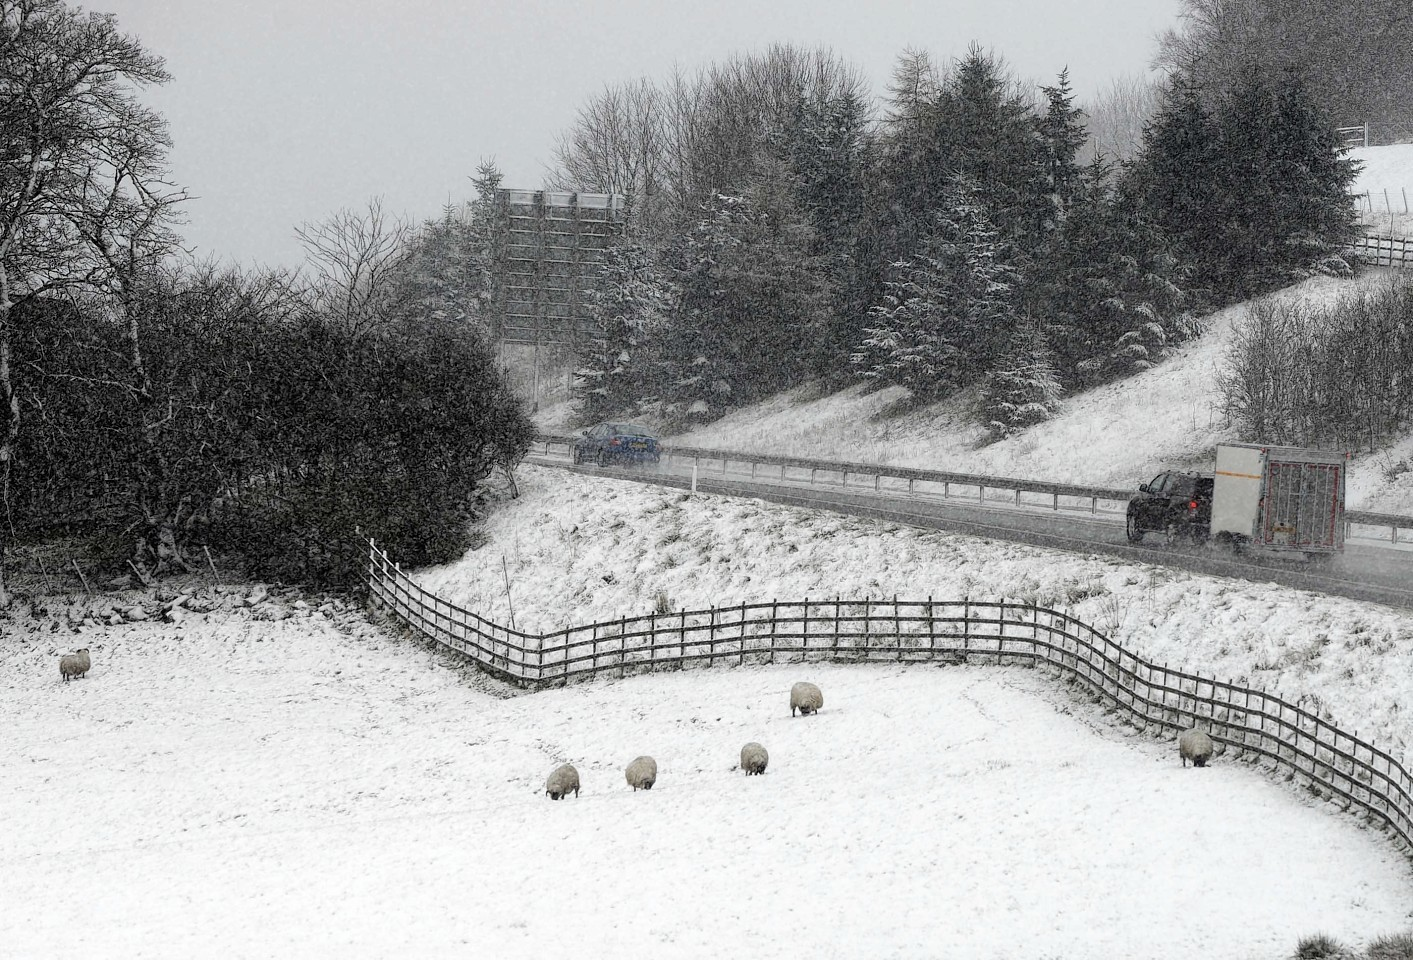 Scotland looks set for a wintry Bank Holiday weekend